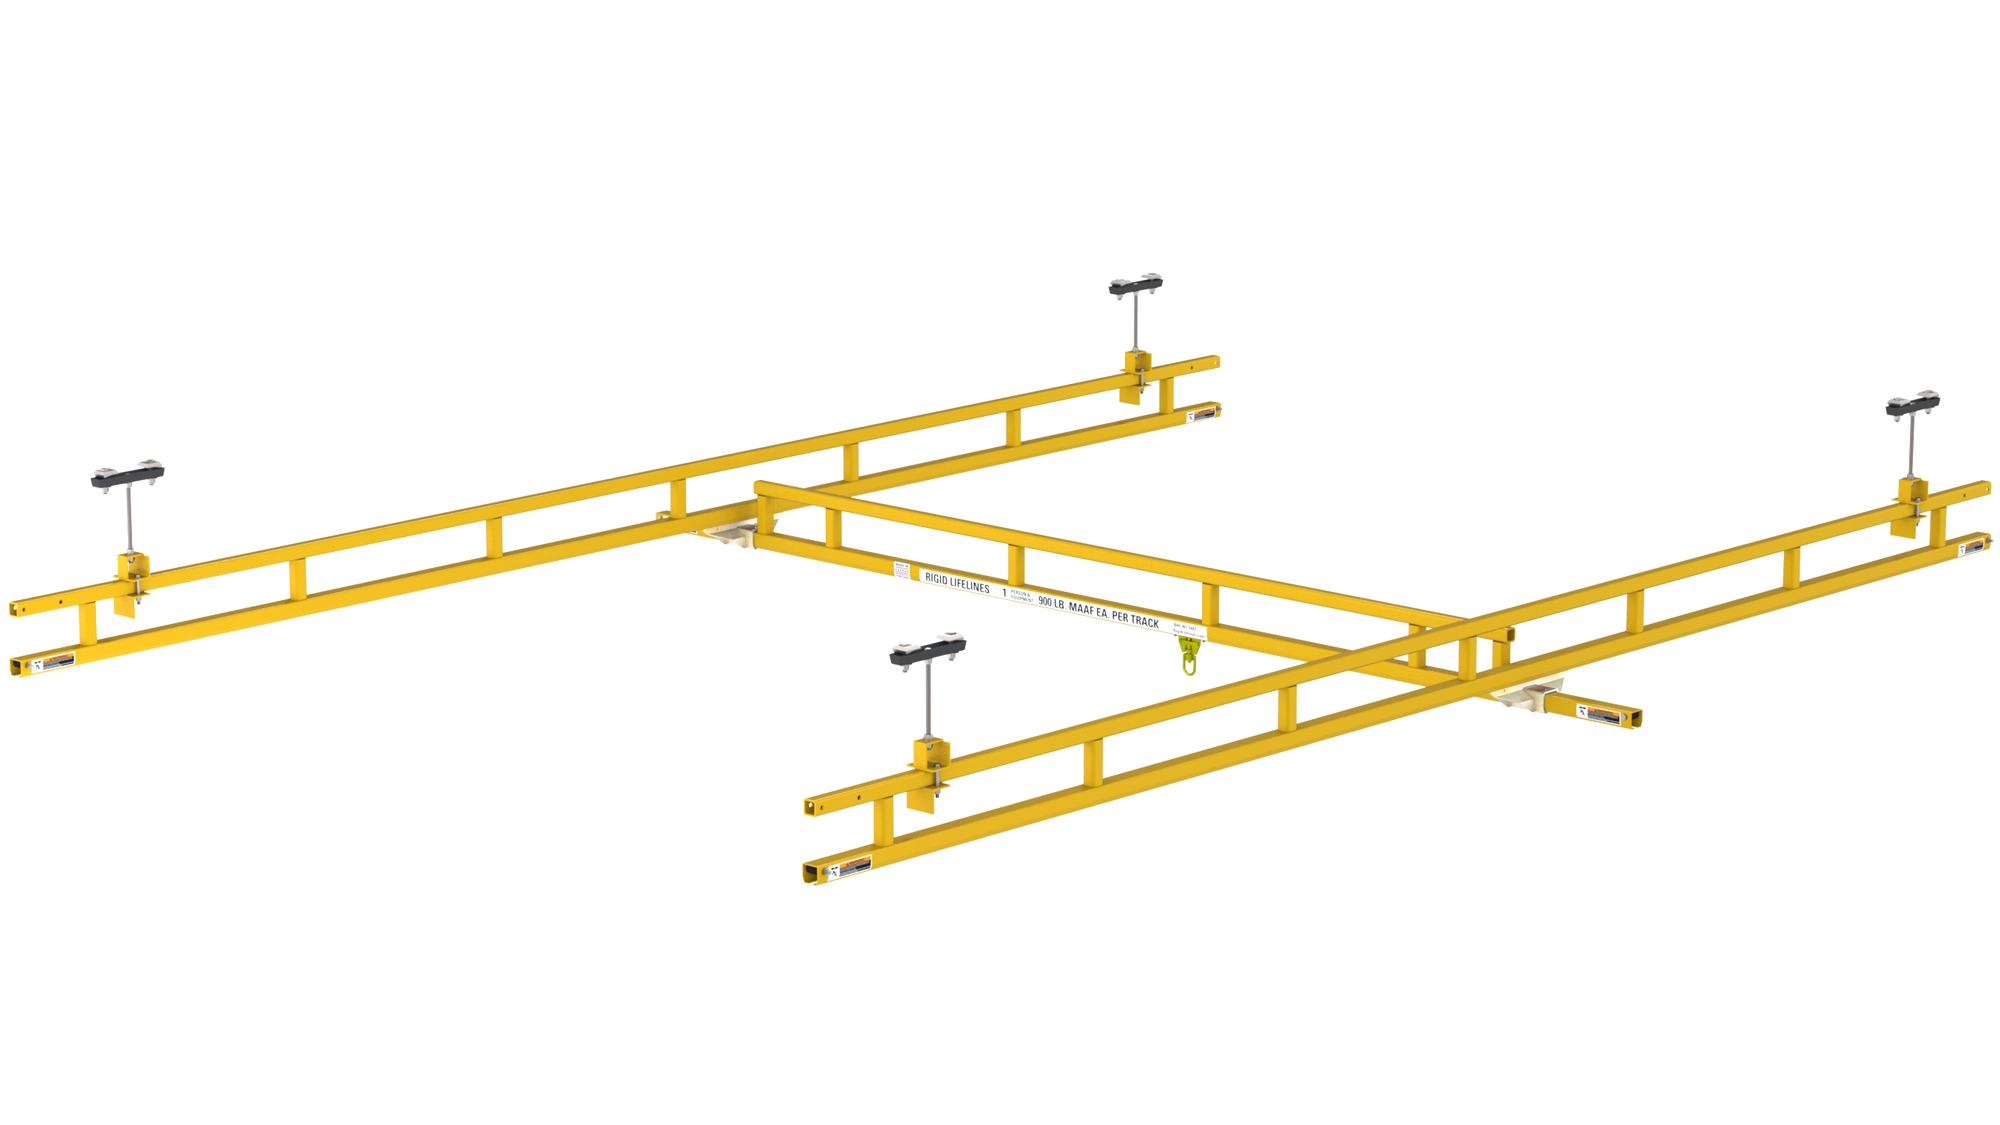 Ceiling Mount Traveling Bridge With 30' Track Support Spacing